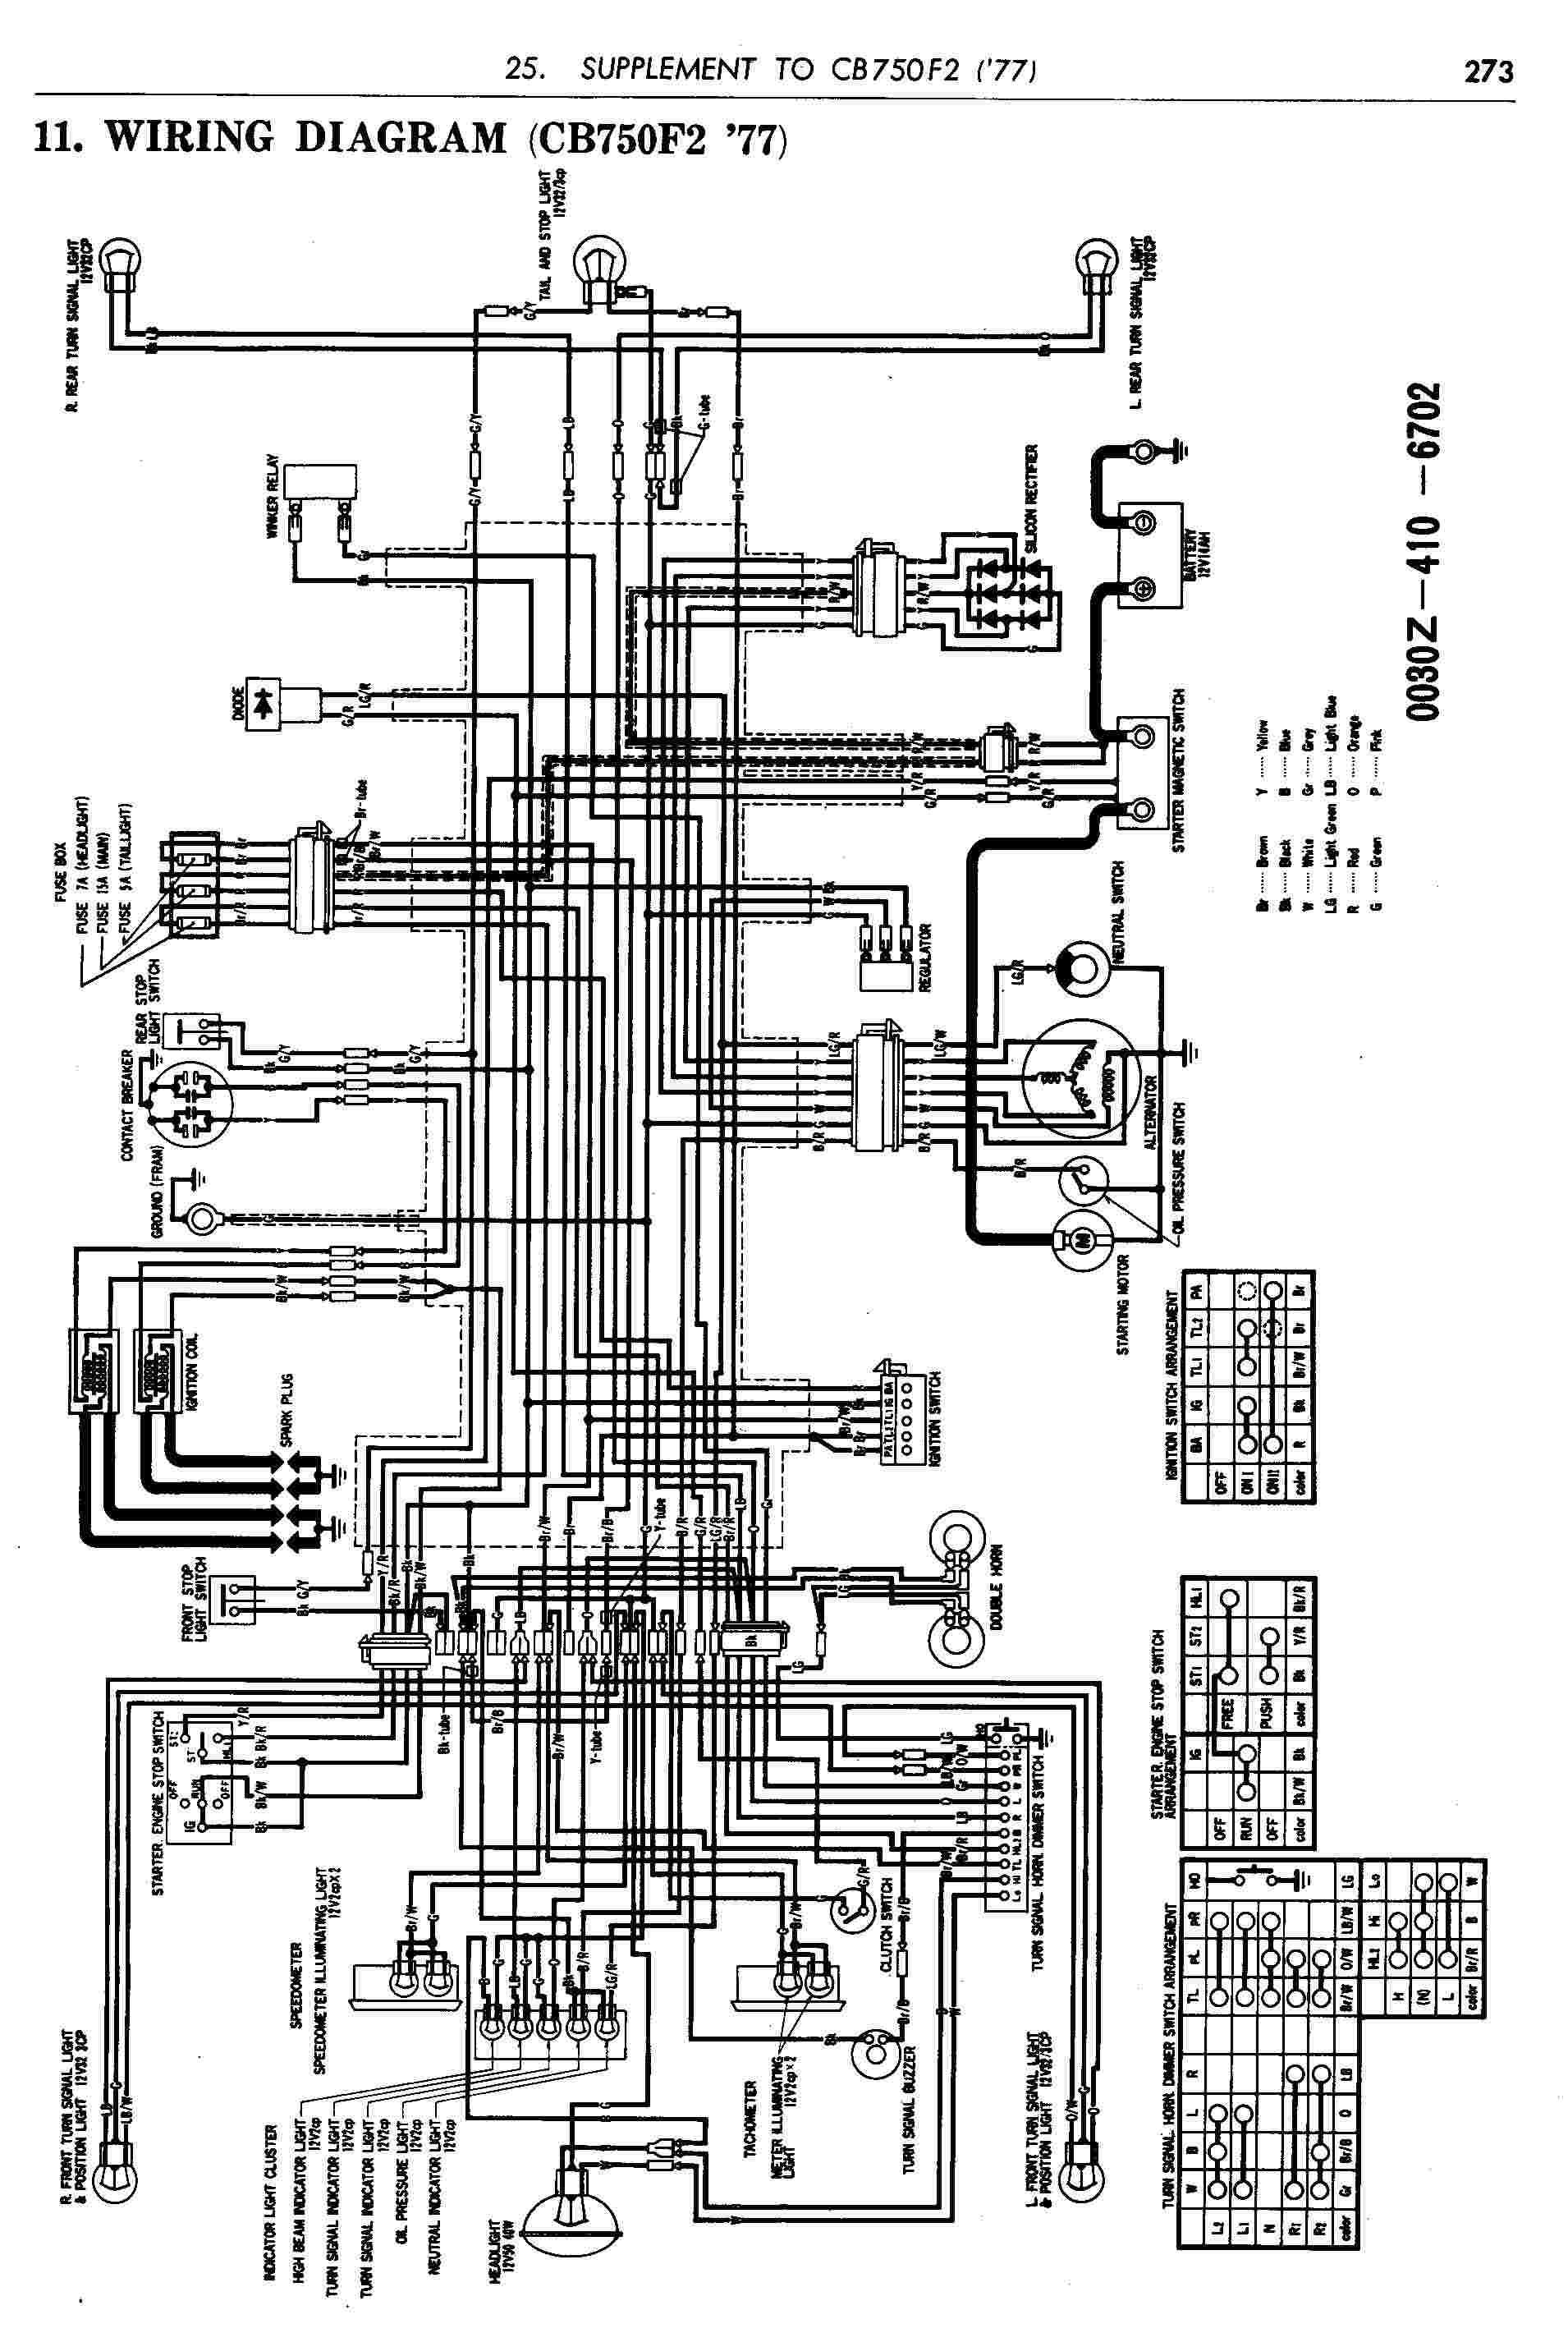 wiringF2 honda cb750k2 cb750 engine diagram at alyssarenee.co